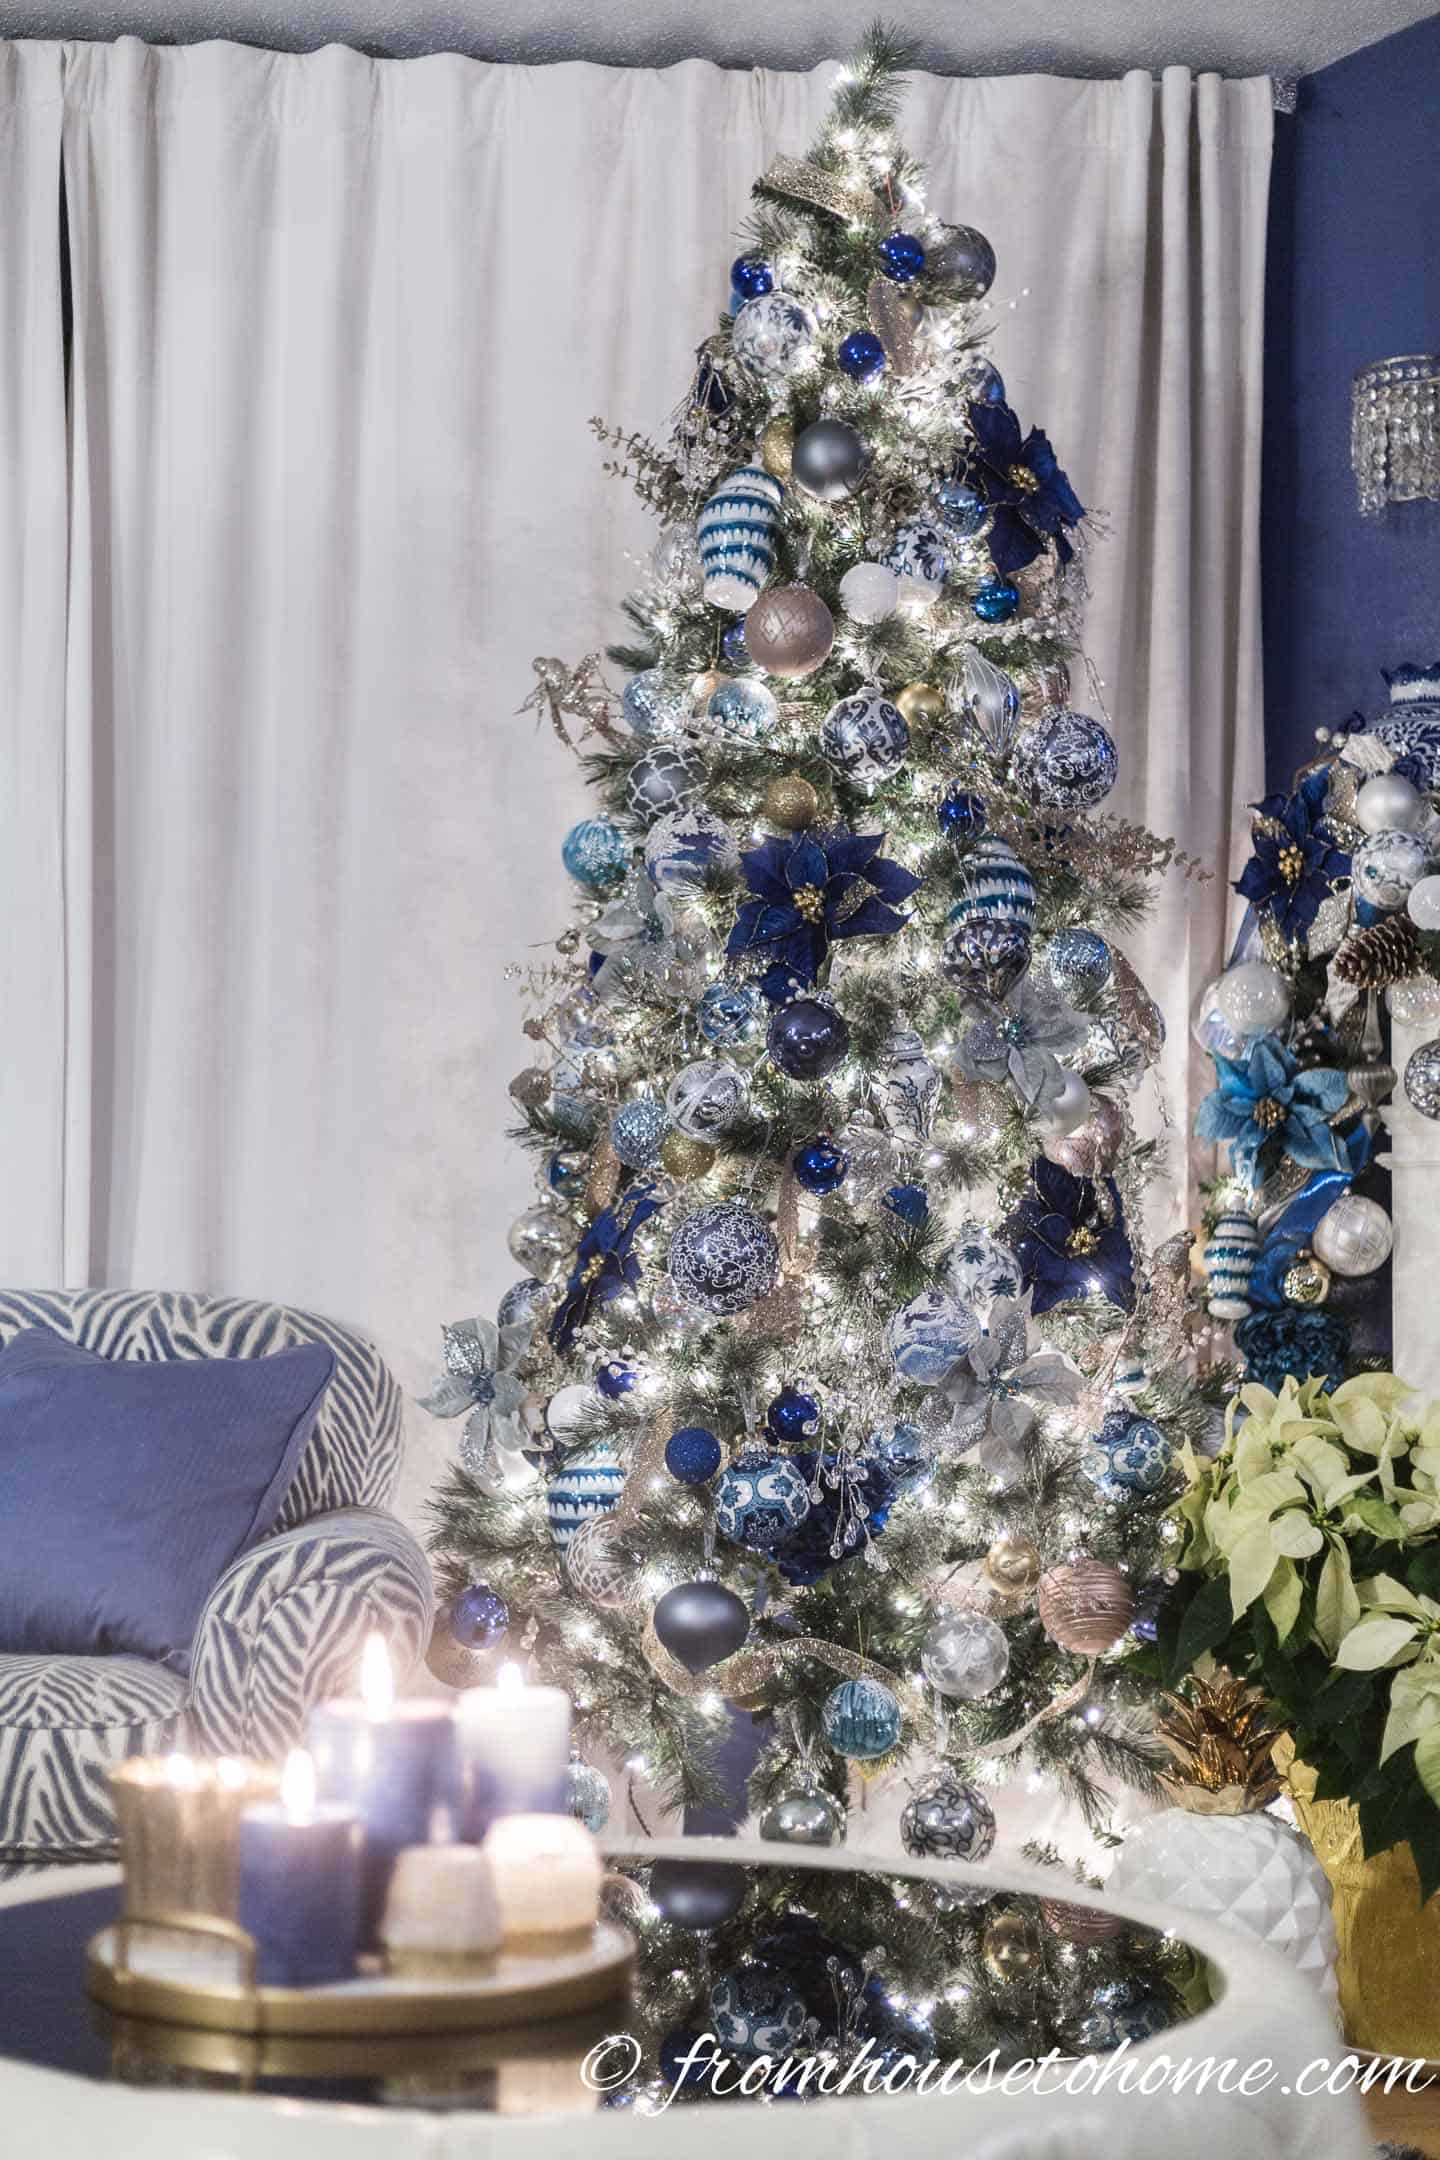 Christmas tree decorated with blue and white Christmas ornaments including blue poinsettias, and mini blue and white ginger jars